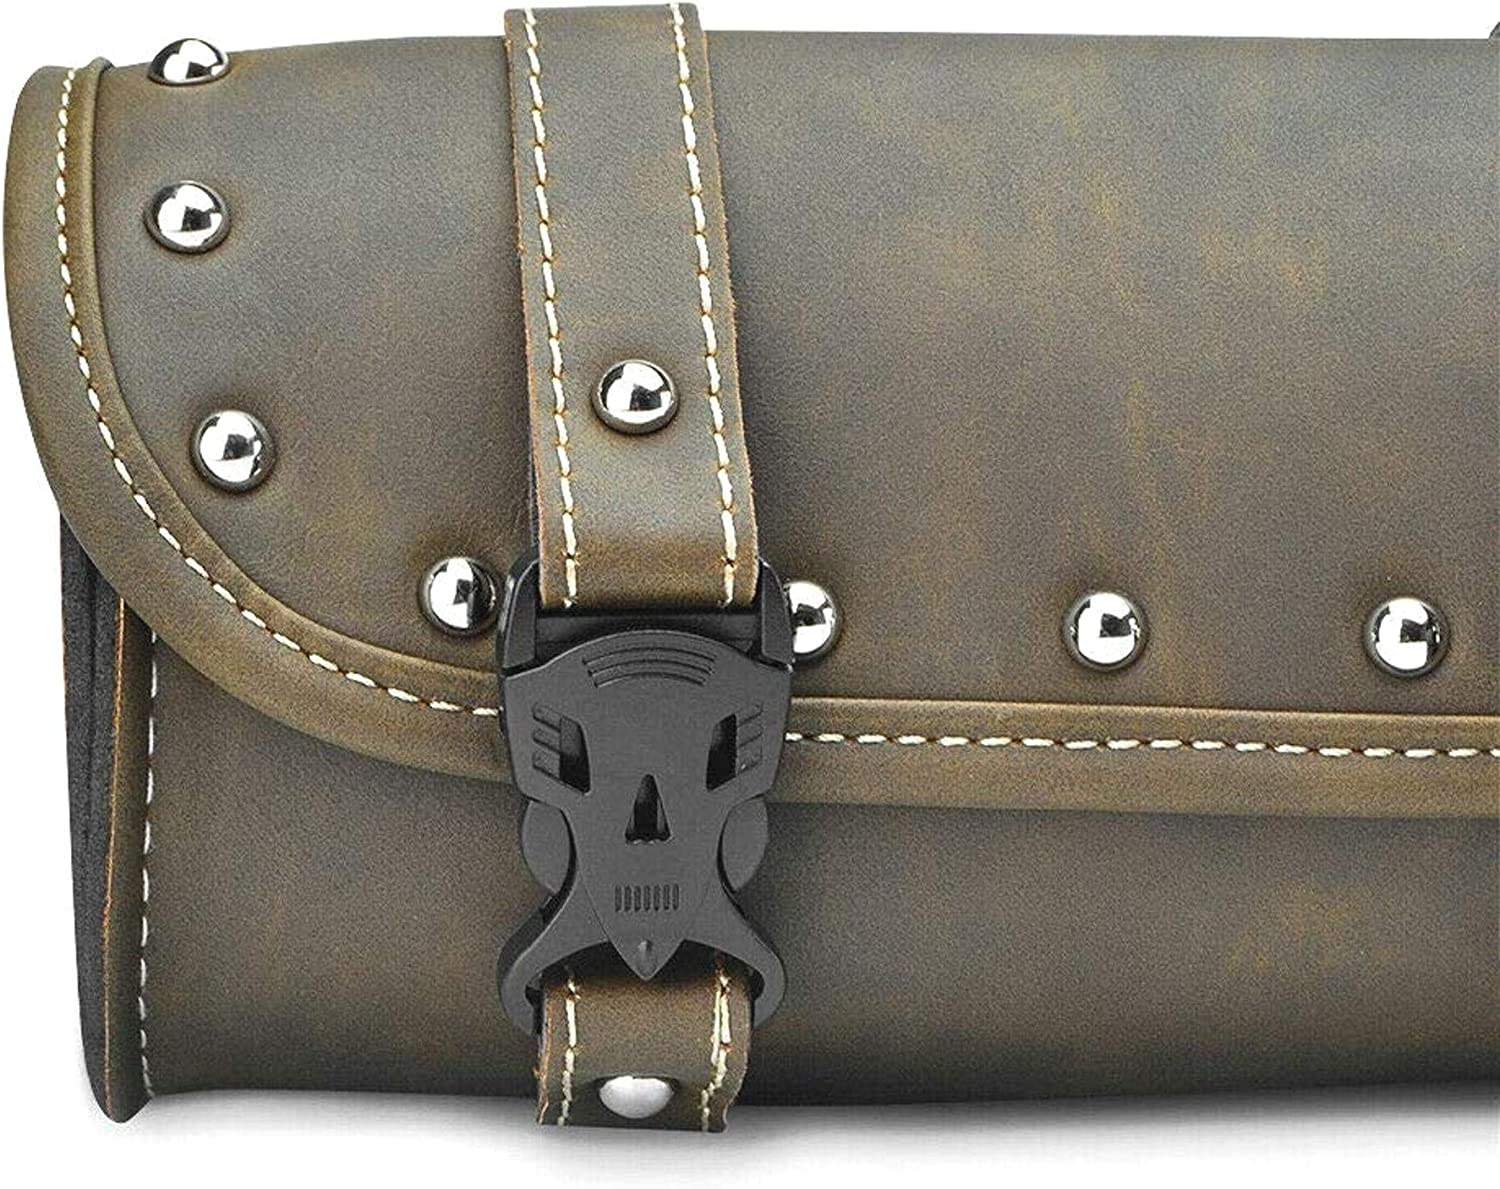 LIUSHUI Motorcycle Leather Bag Saddle Bag Tail Bag Barrel Luggage Roll Tool Pouch Storage with 2 Mounting Straps